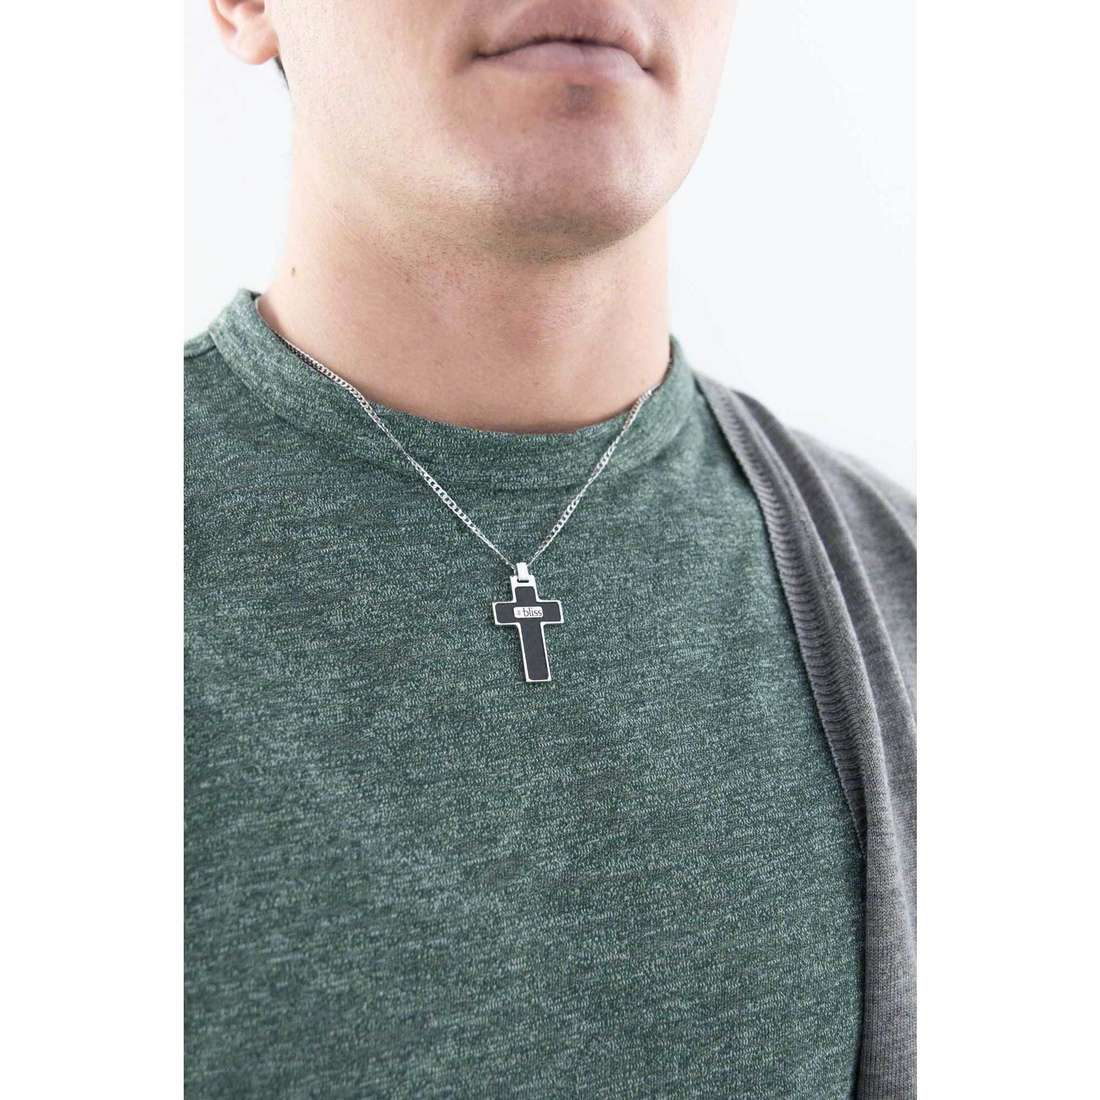 Bliss necklaces B.Black man 20043952 indosso